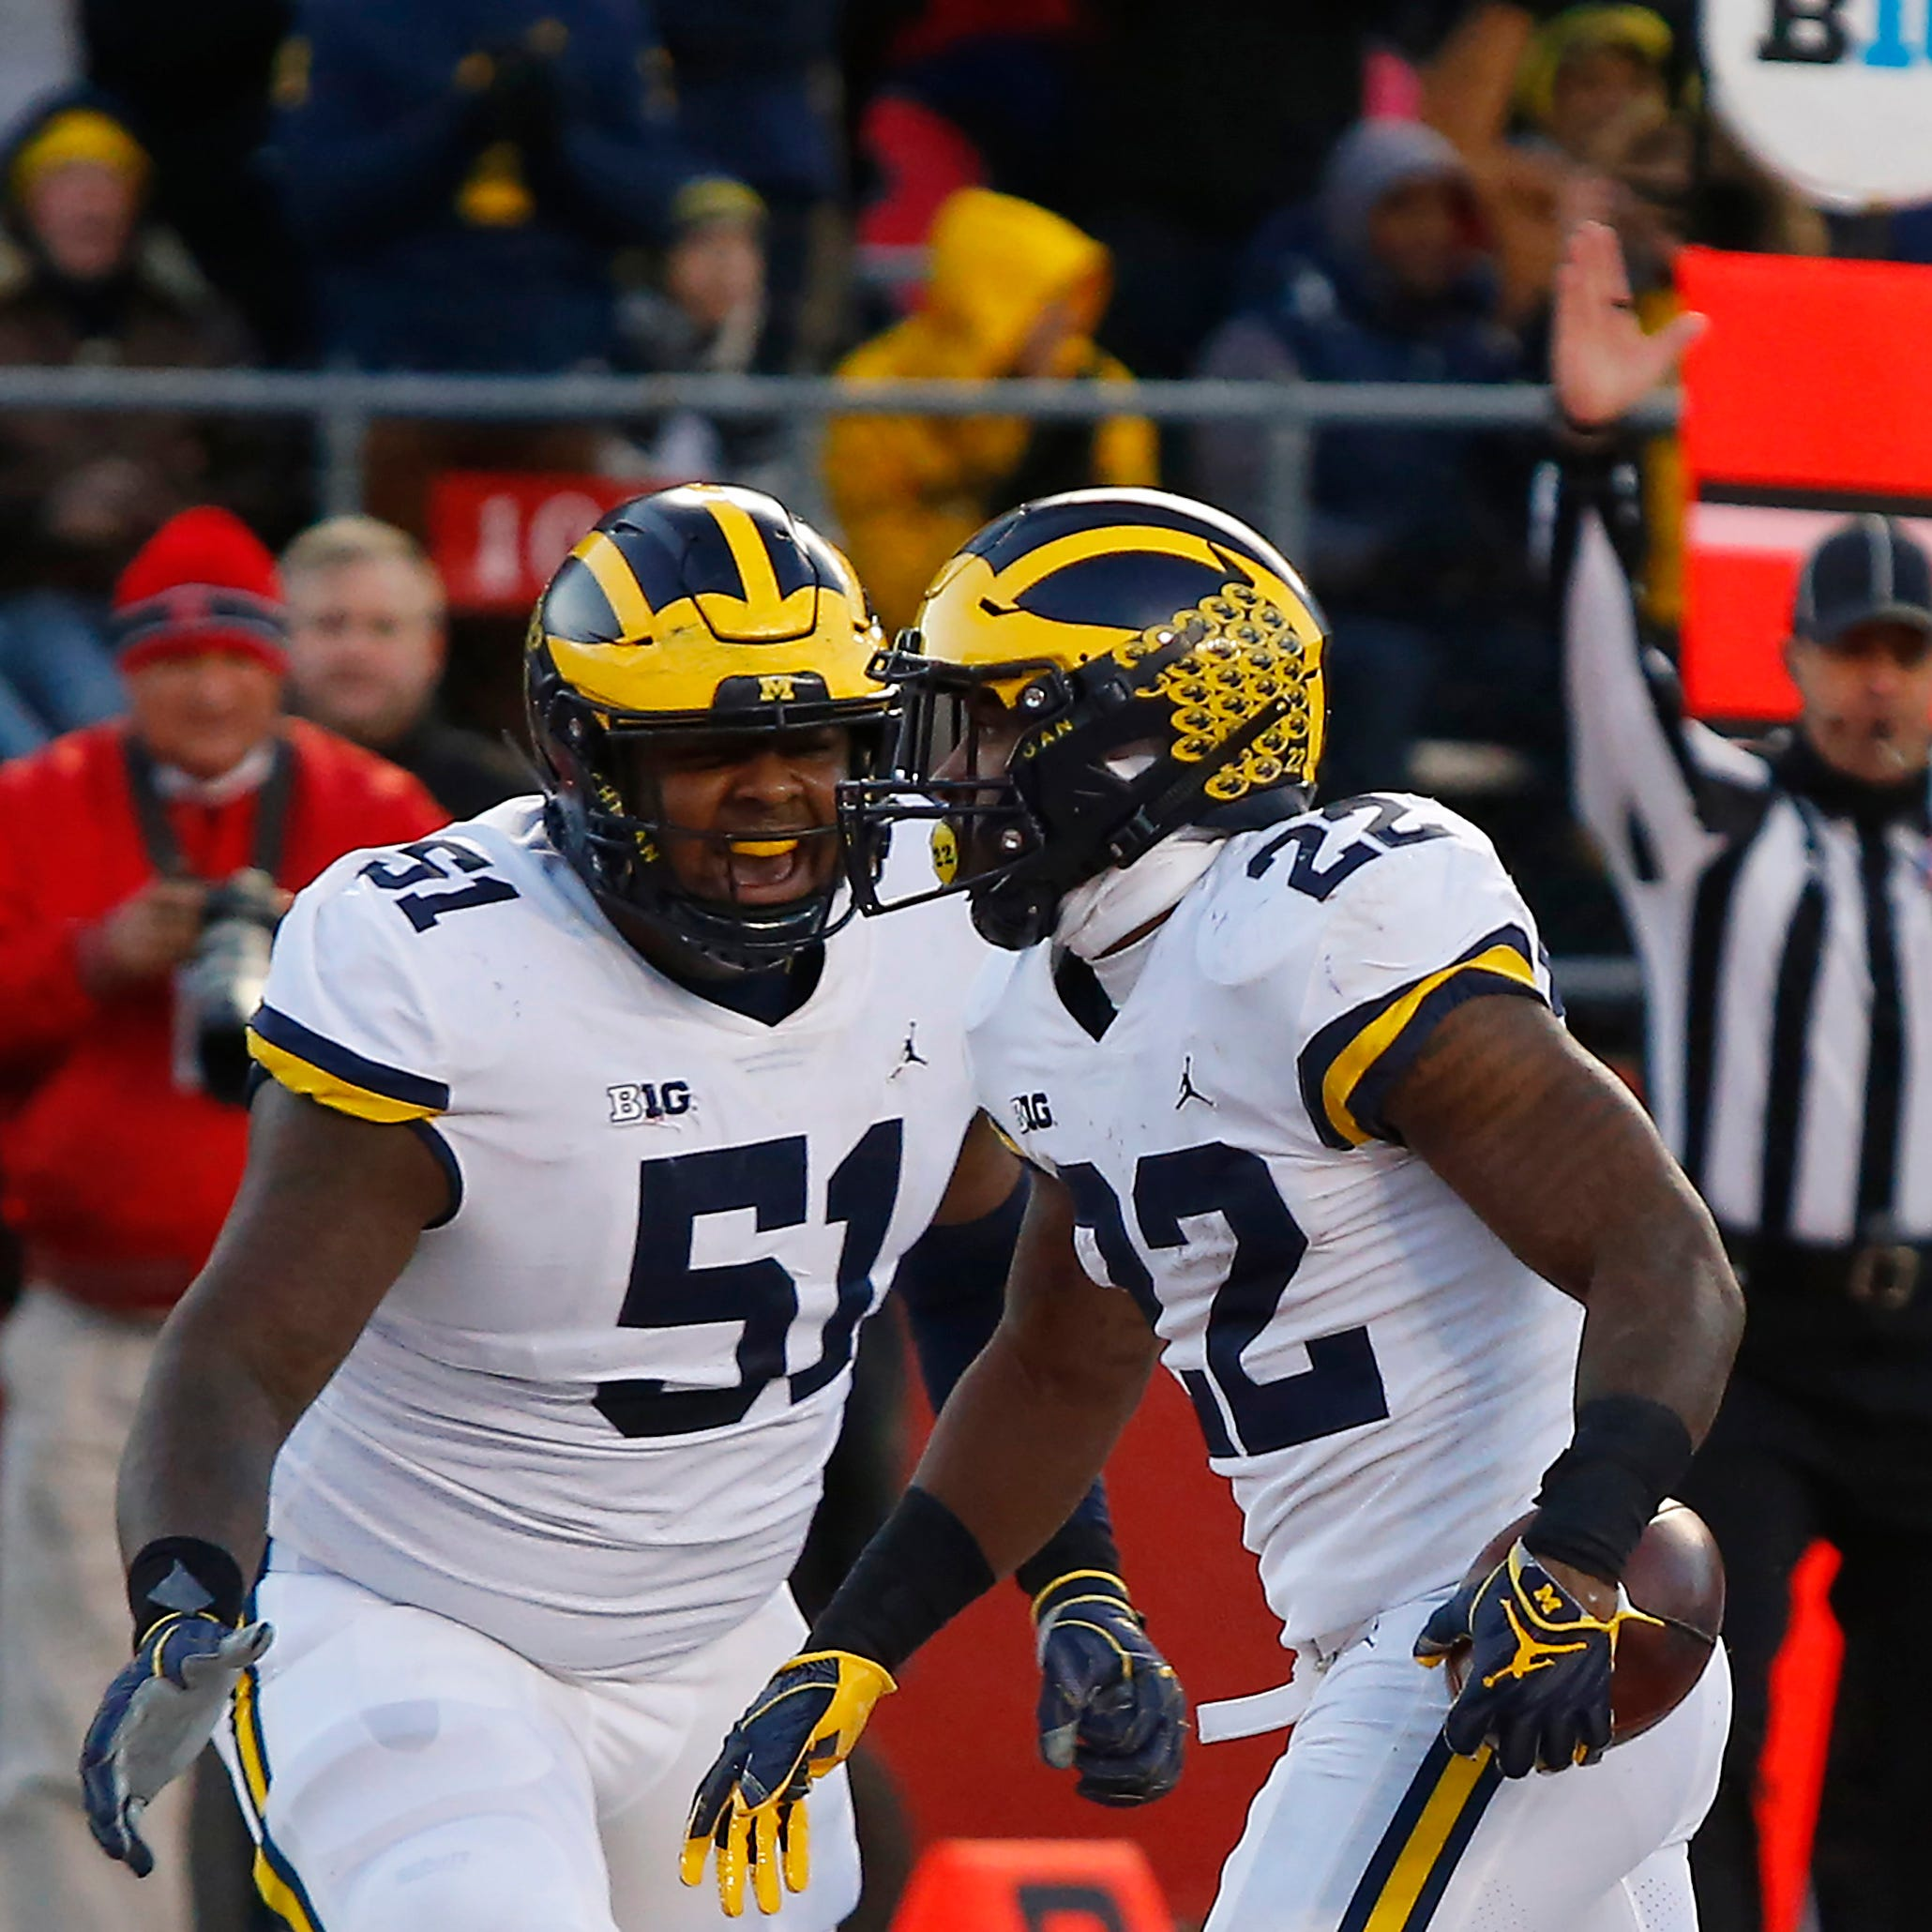 Michigan football vs. Indiana: Scouting report, prediction